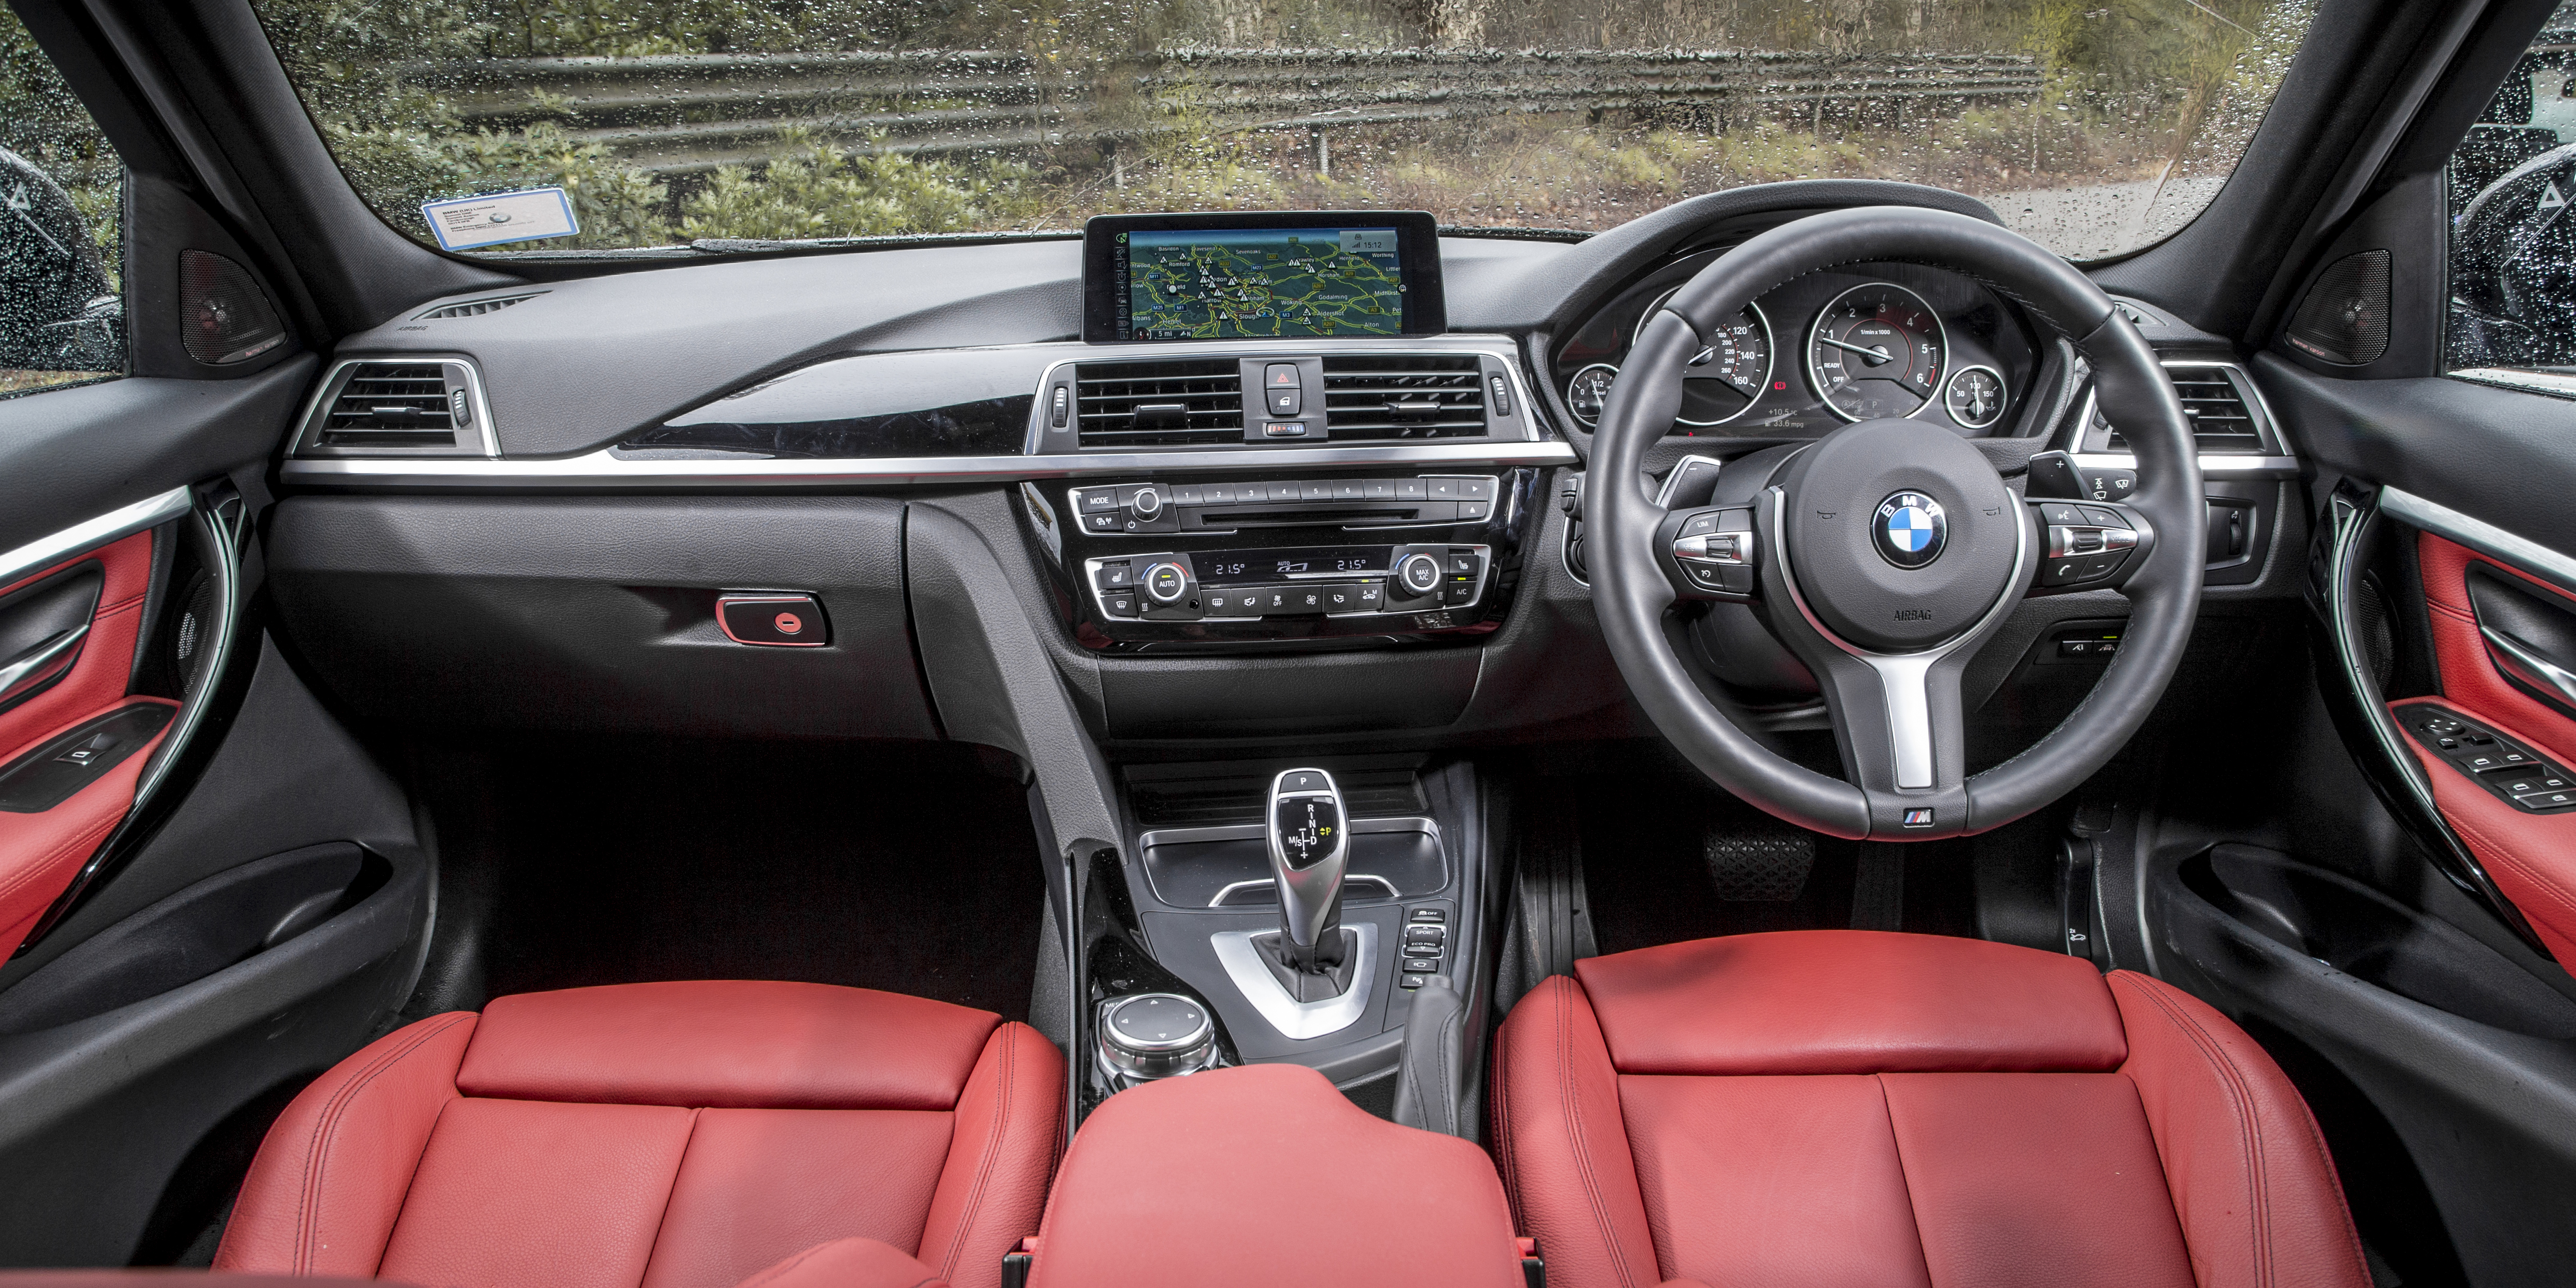 Bmw 330e Review Uk Bmw 330e Review Bmw E Review With Bmw 330e Review